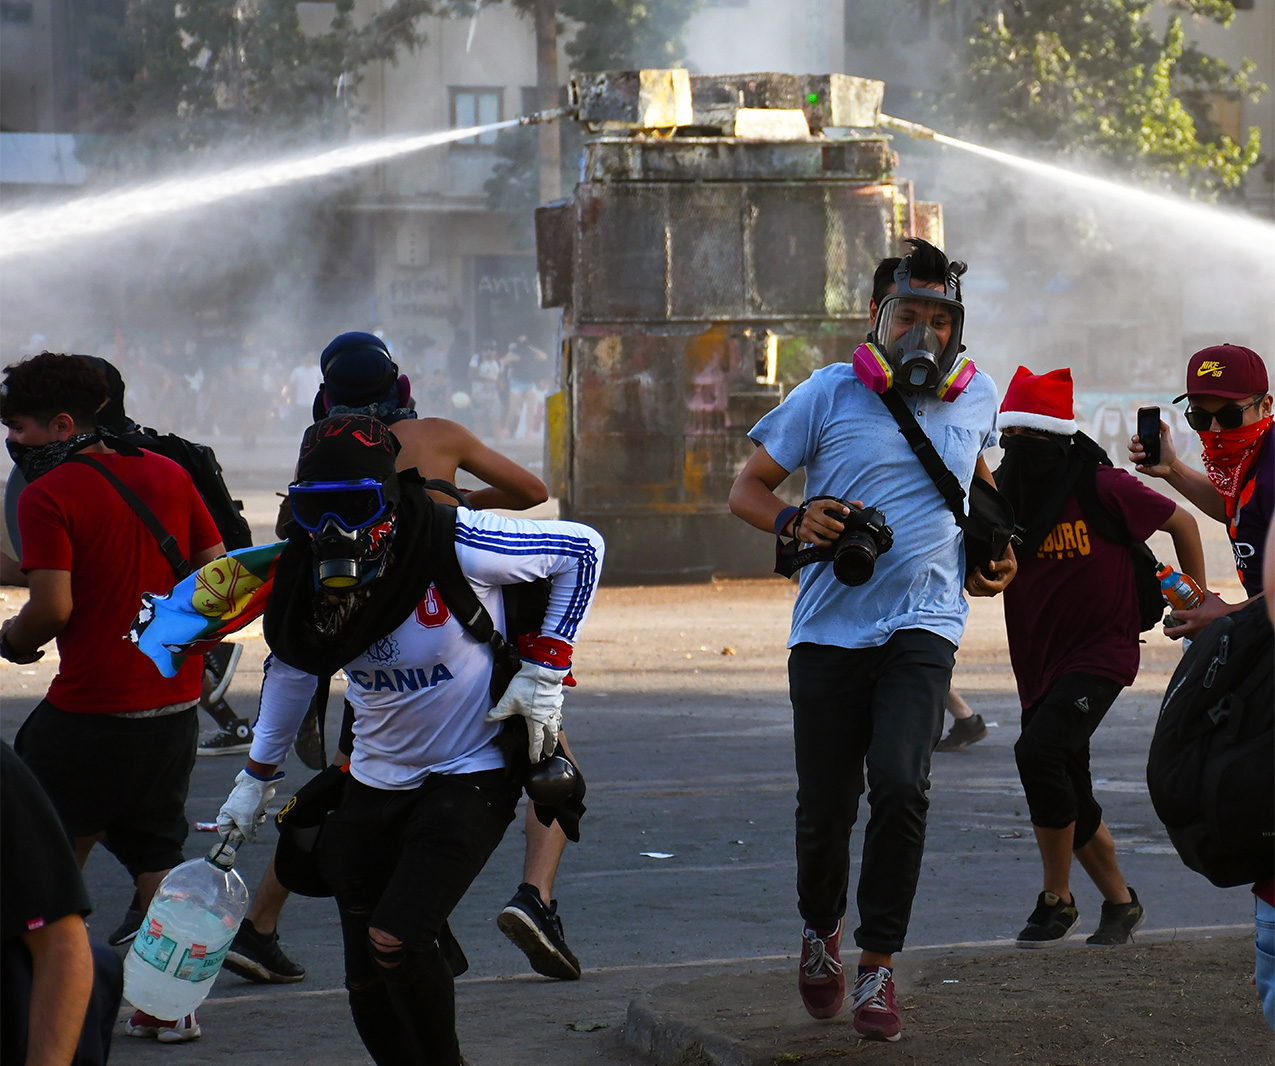 Young people wearing gas masks run away from water cannons in the street during protests